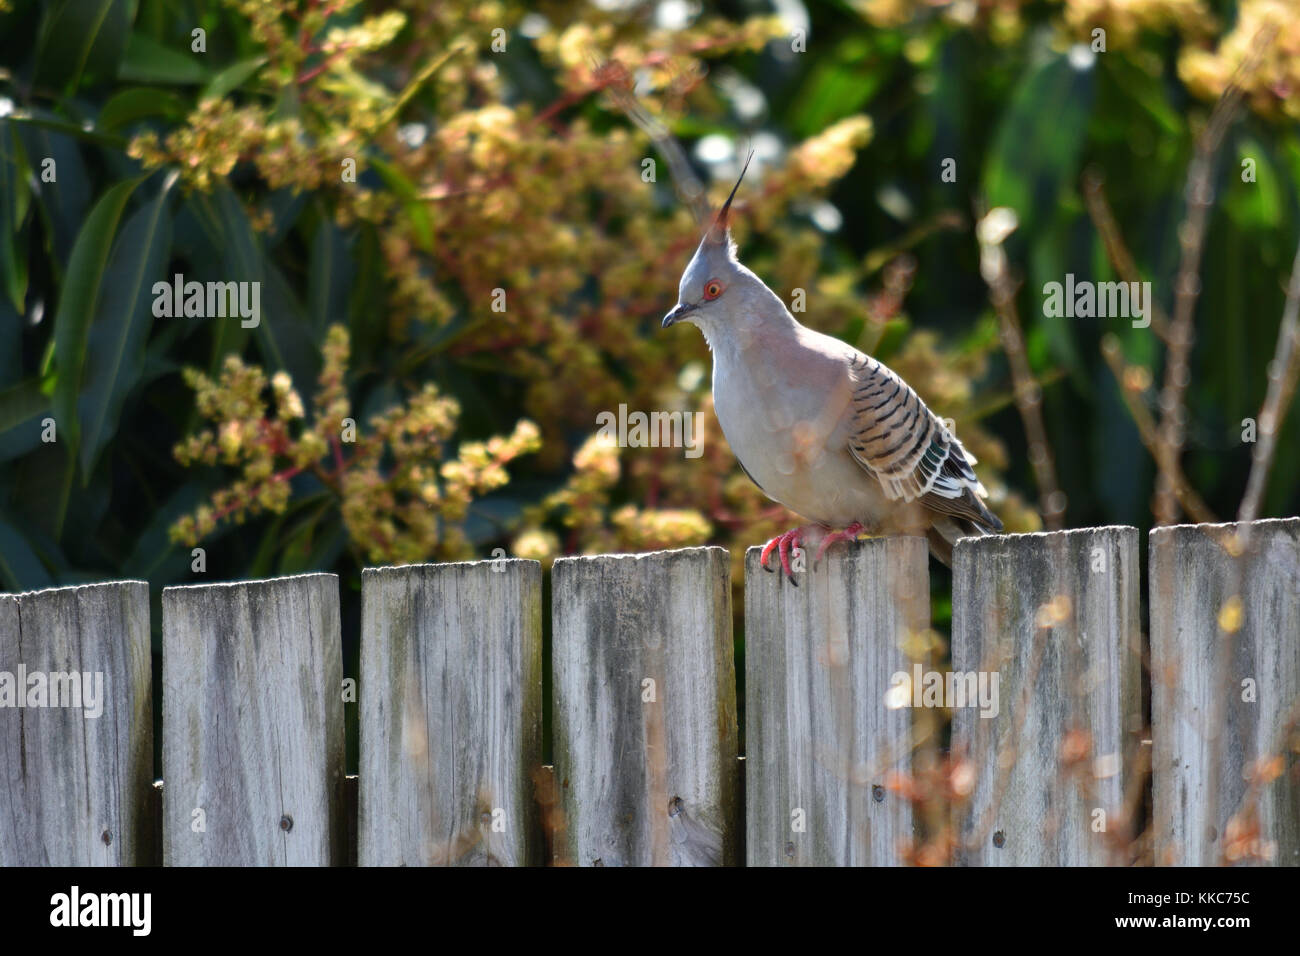 An Australian Crested Pigeon on a wooden fence - Stock Image